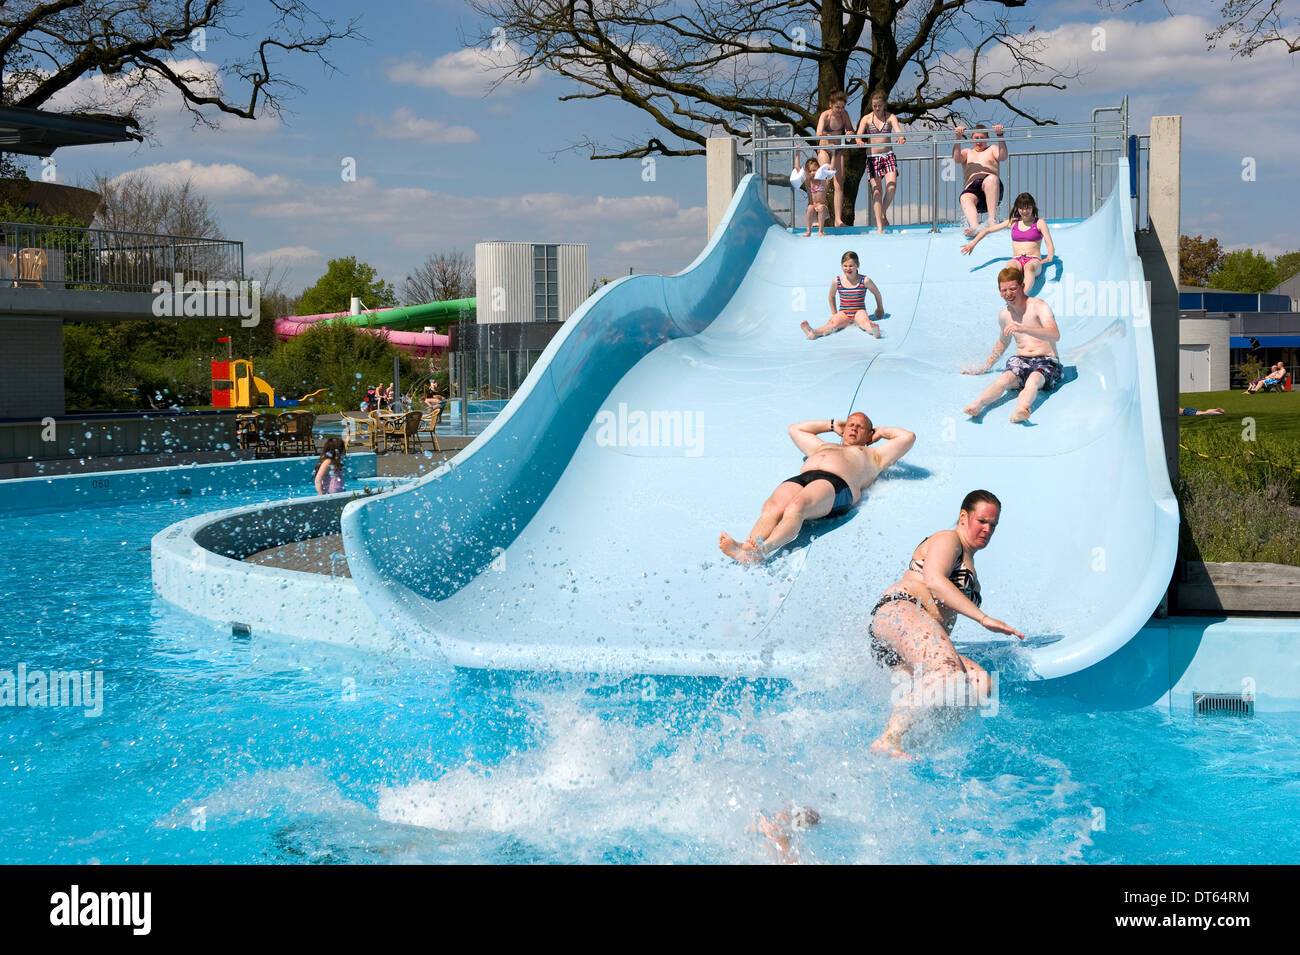 People are sliding on a water slide of a public pool - Stock Image